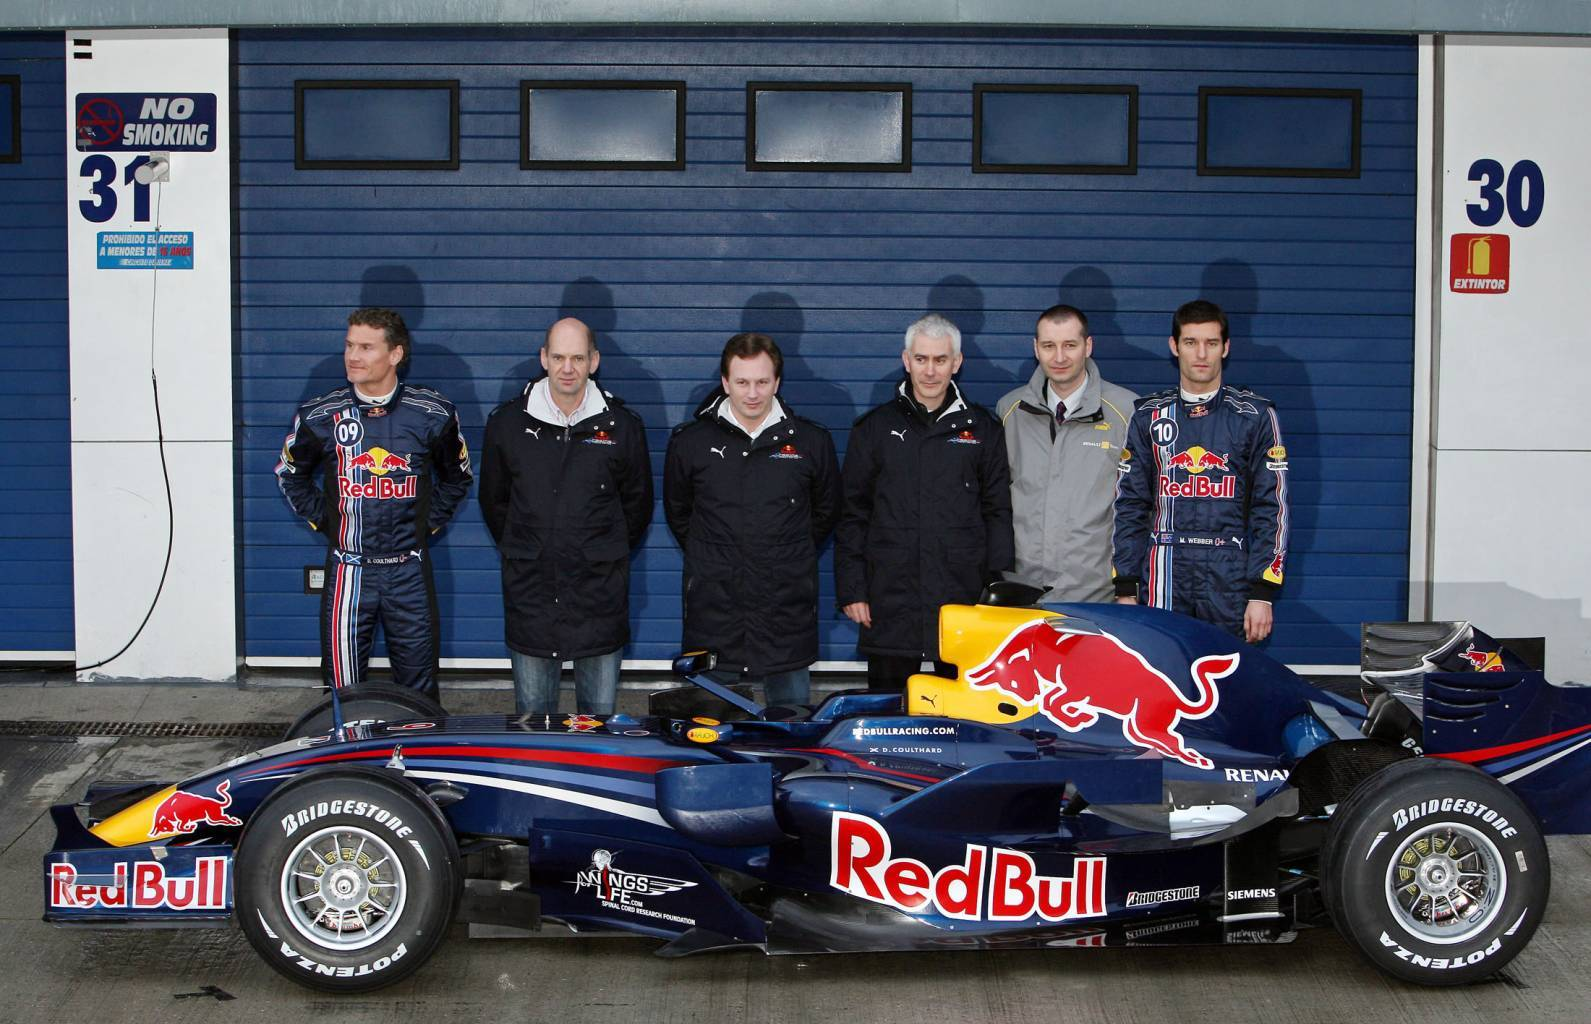 Red bull rb4 photo - 2